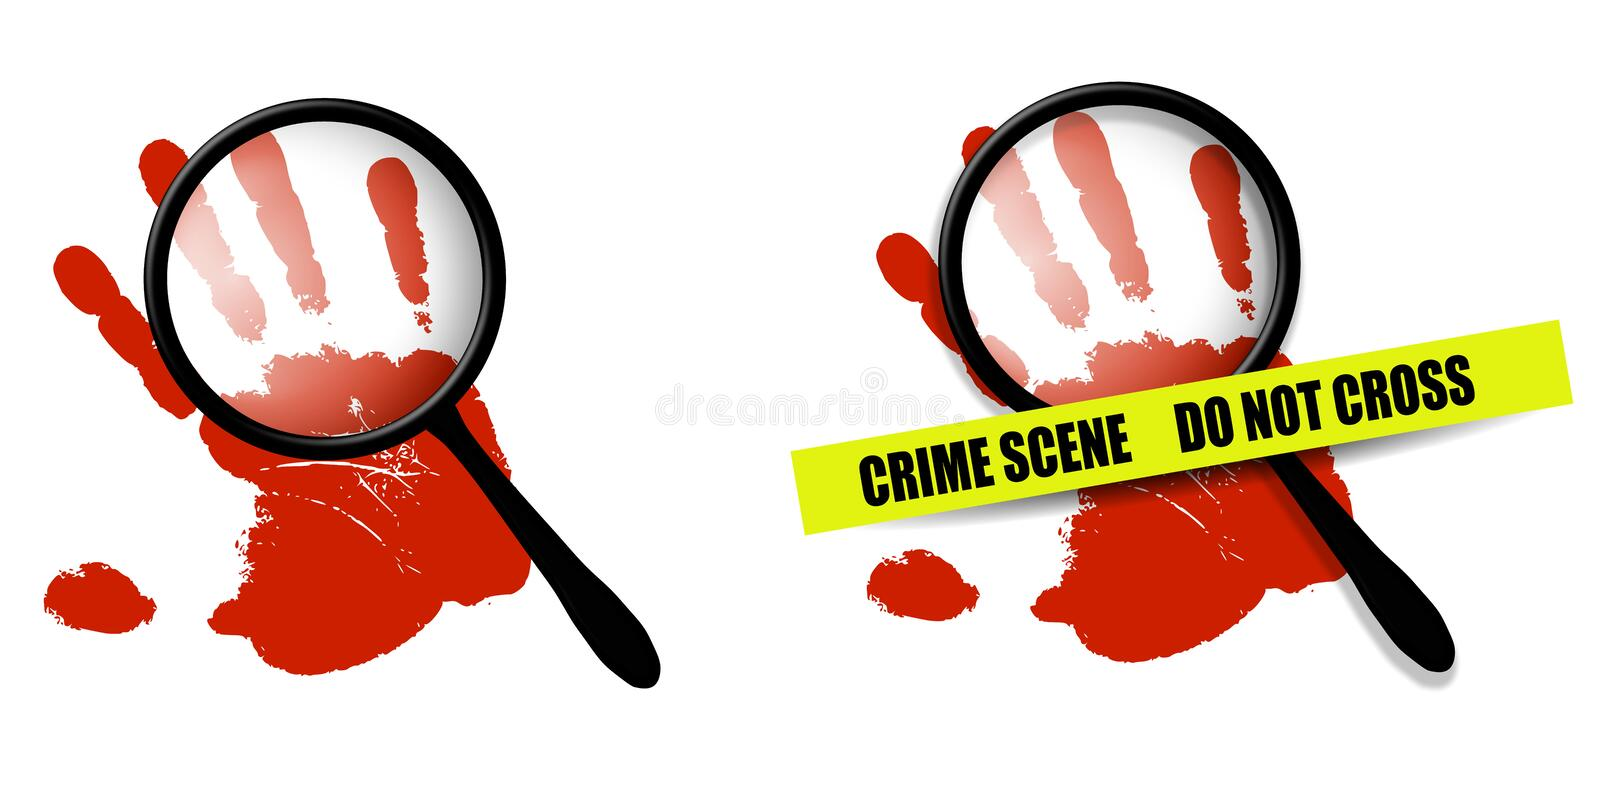 crime scene red handprints stock illustration illustration of rh dreamstime com crime scene template clipart crime scene clipart images